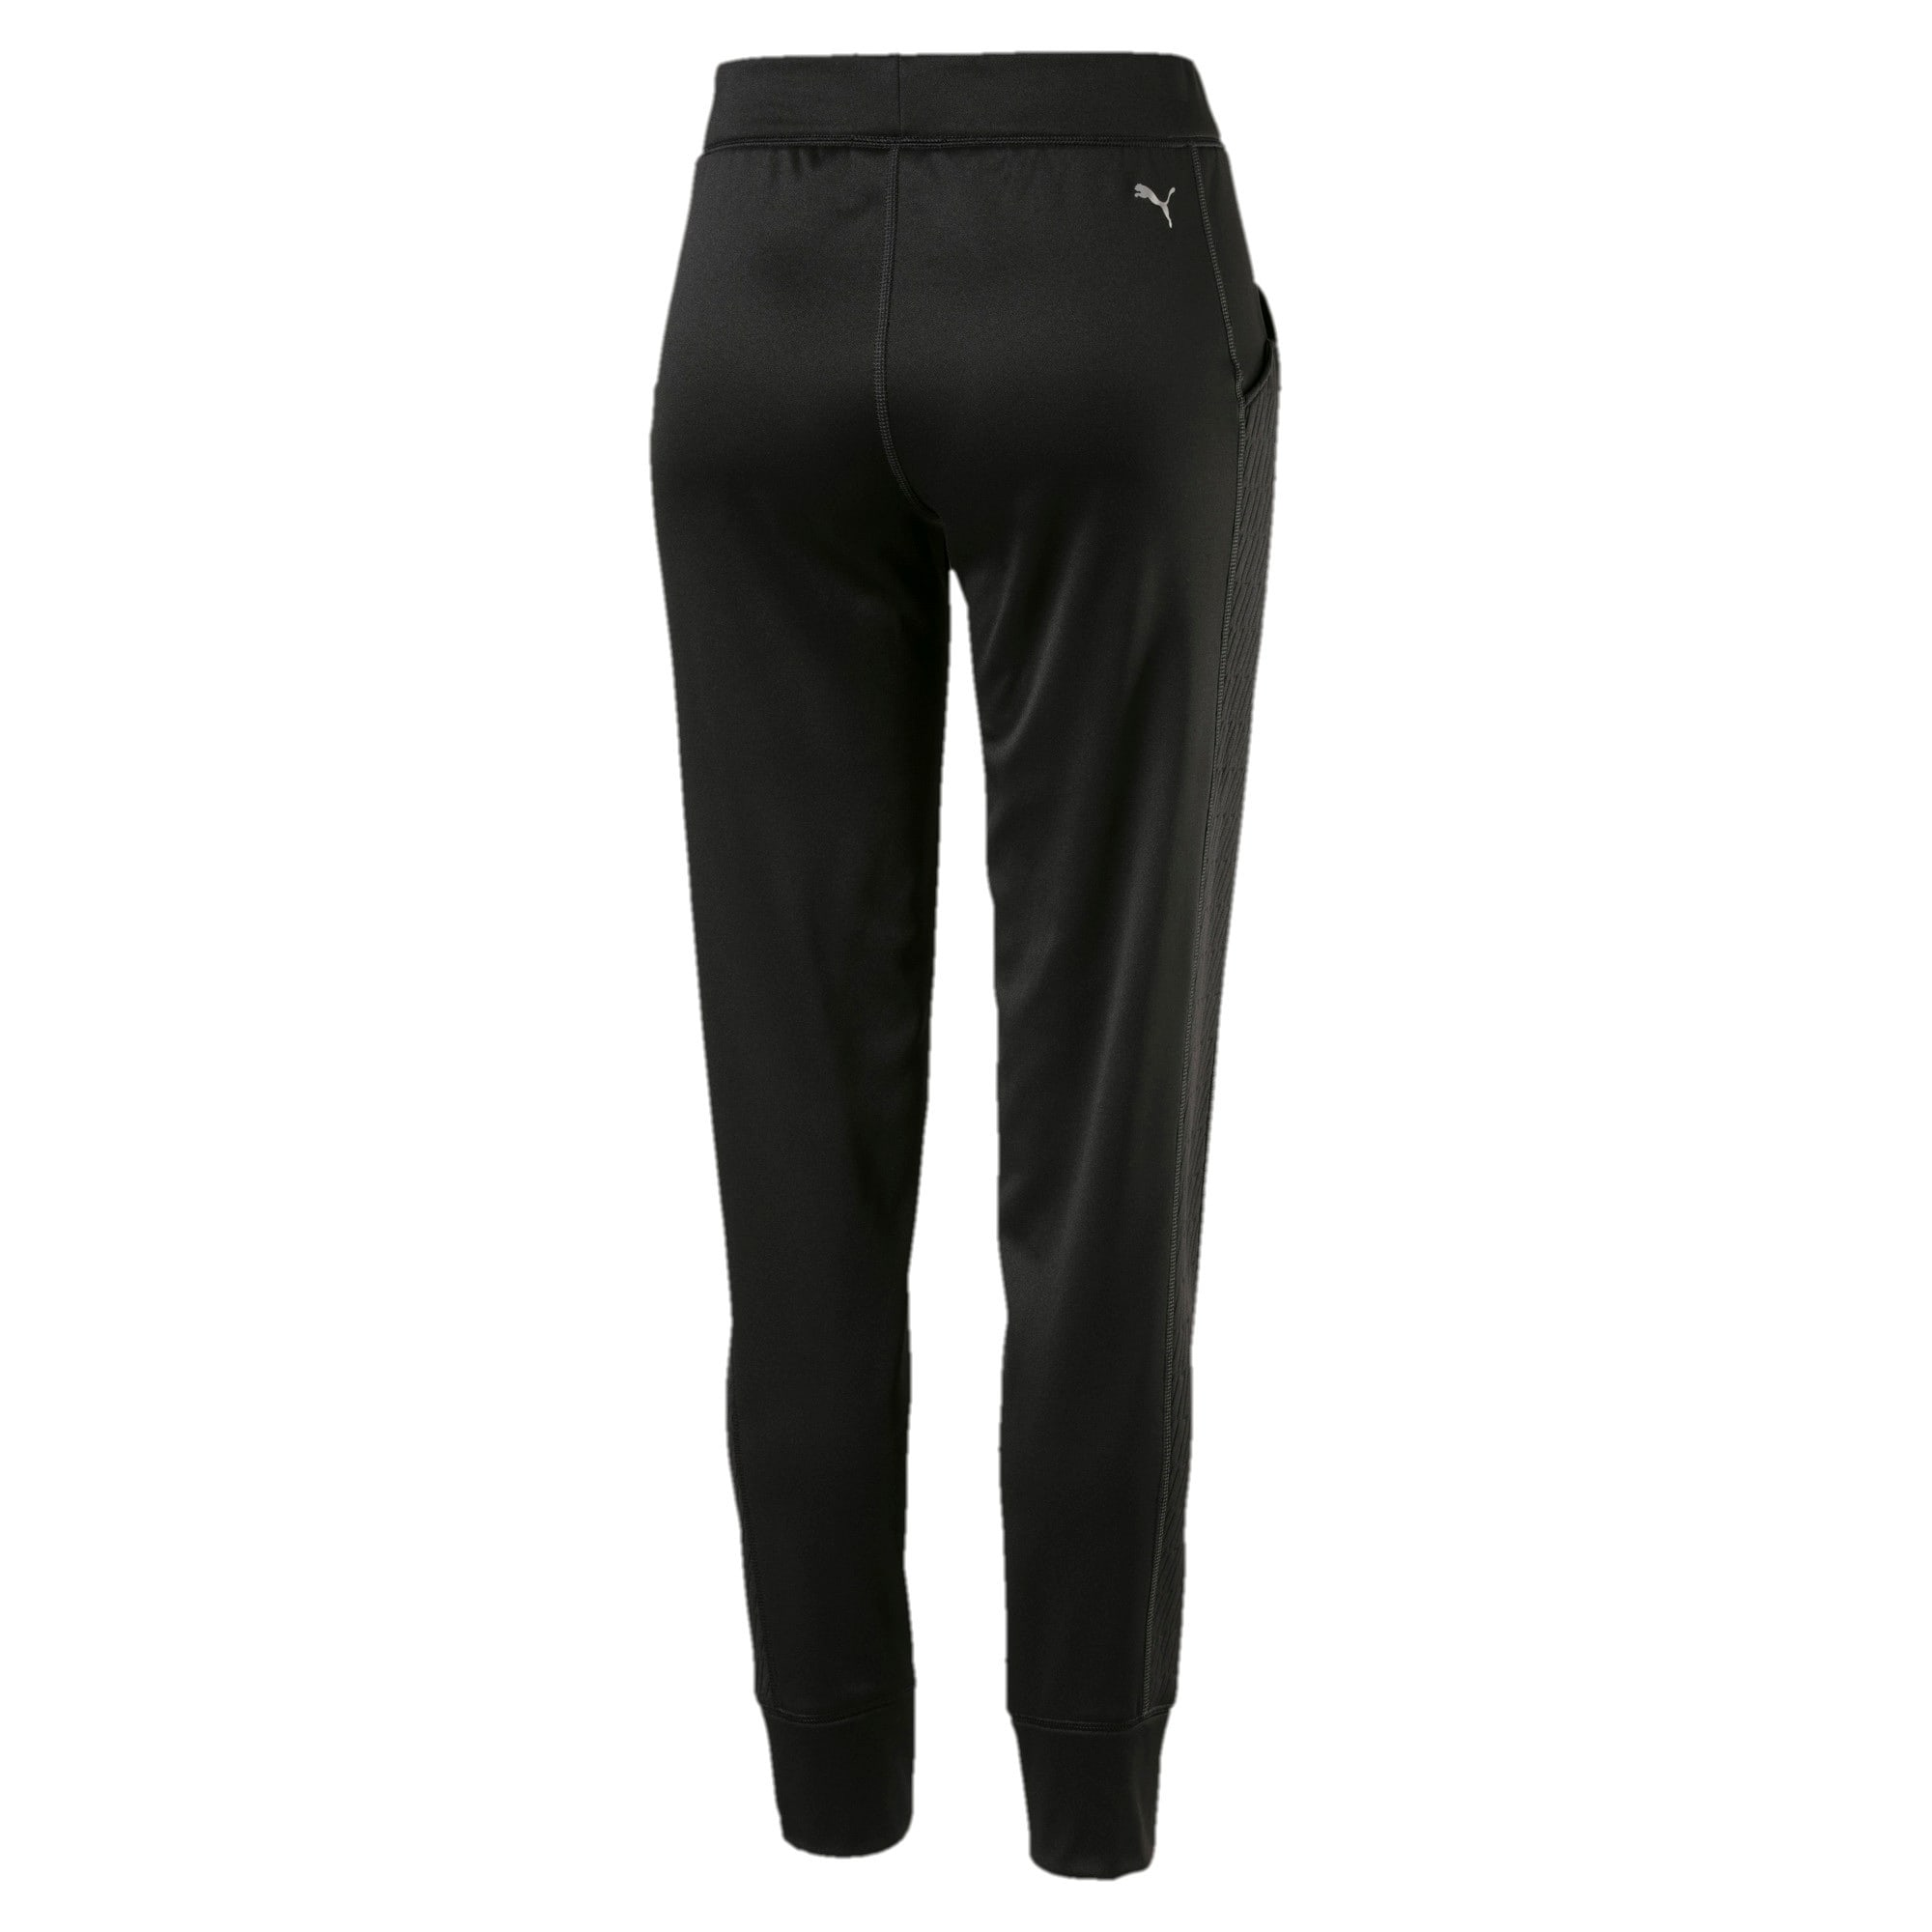 Thumbnail 2 of After Glow Fleece Women's Training Sweatpants, Puma Black, medium-IND